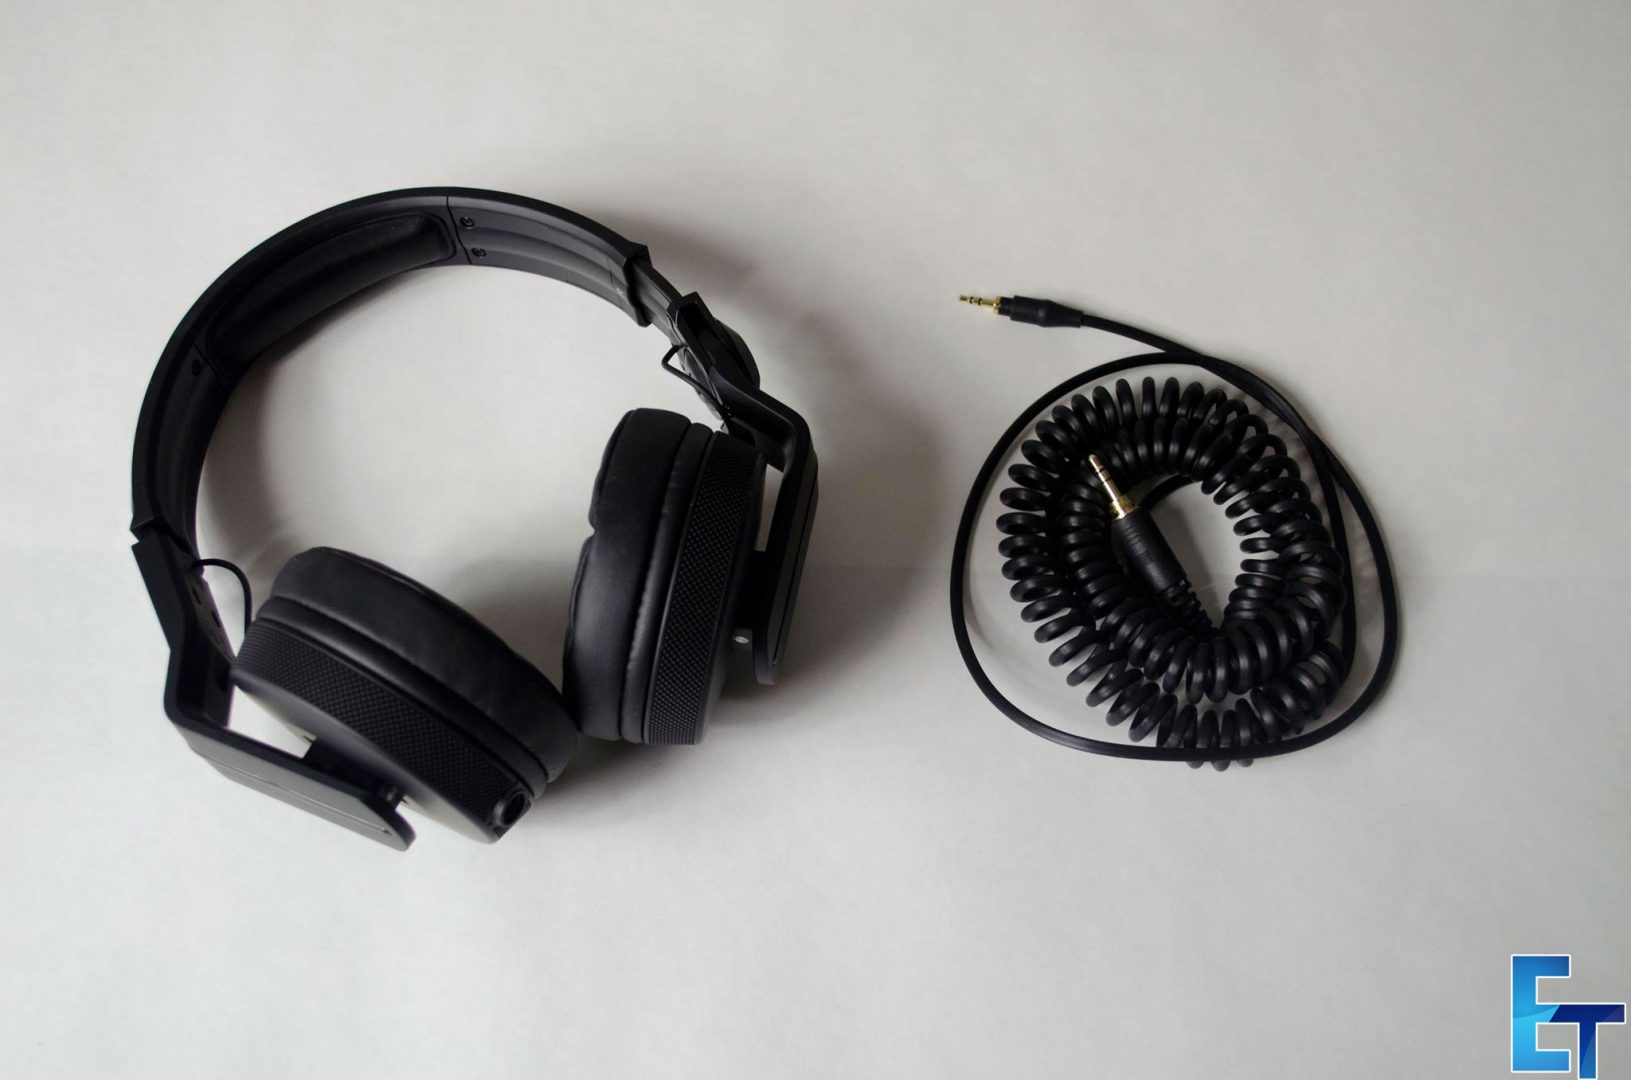 Pioneer-HDJ-700-Headphones-Review